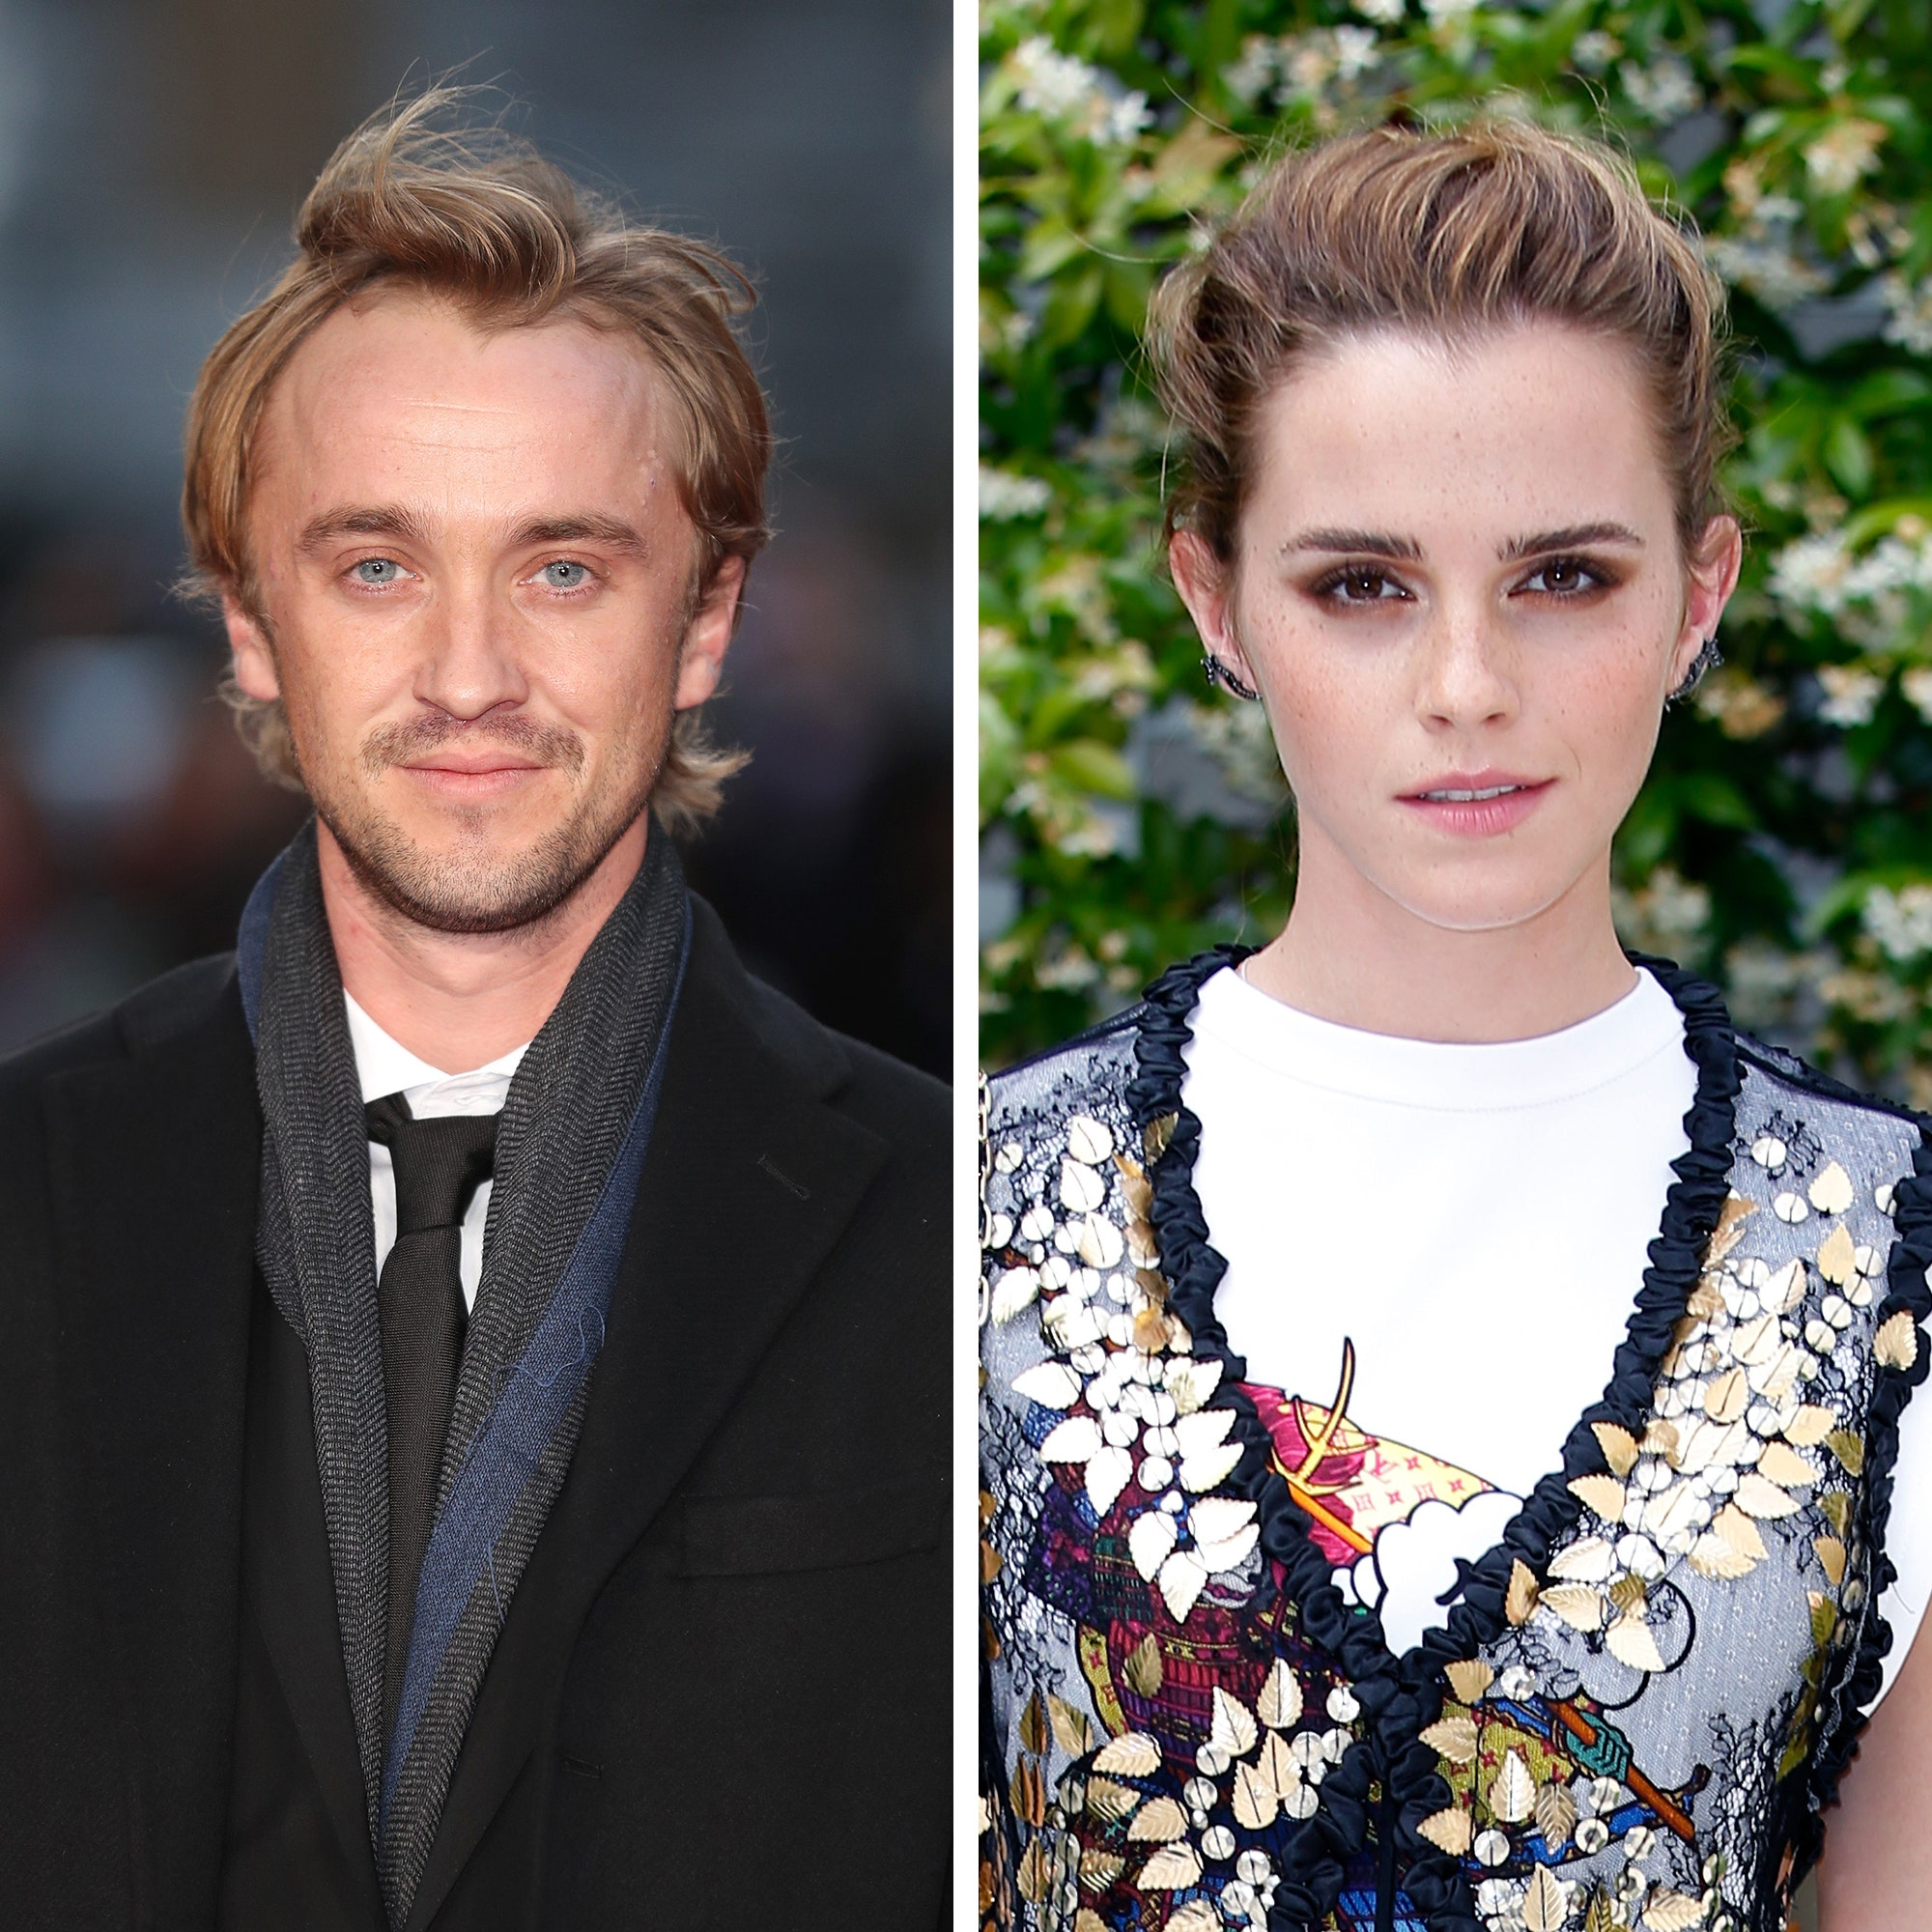 Are Rumors Emma Watson Tom Felton Fake Here Is The Real Thing Which Will Shock You Emma Watson Really Dating Tom Felton Insta Chronicles